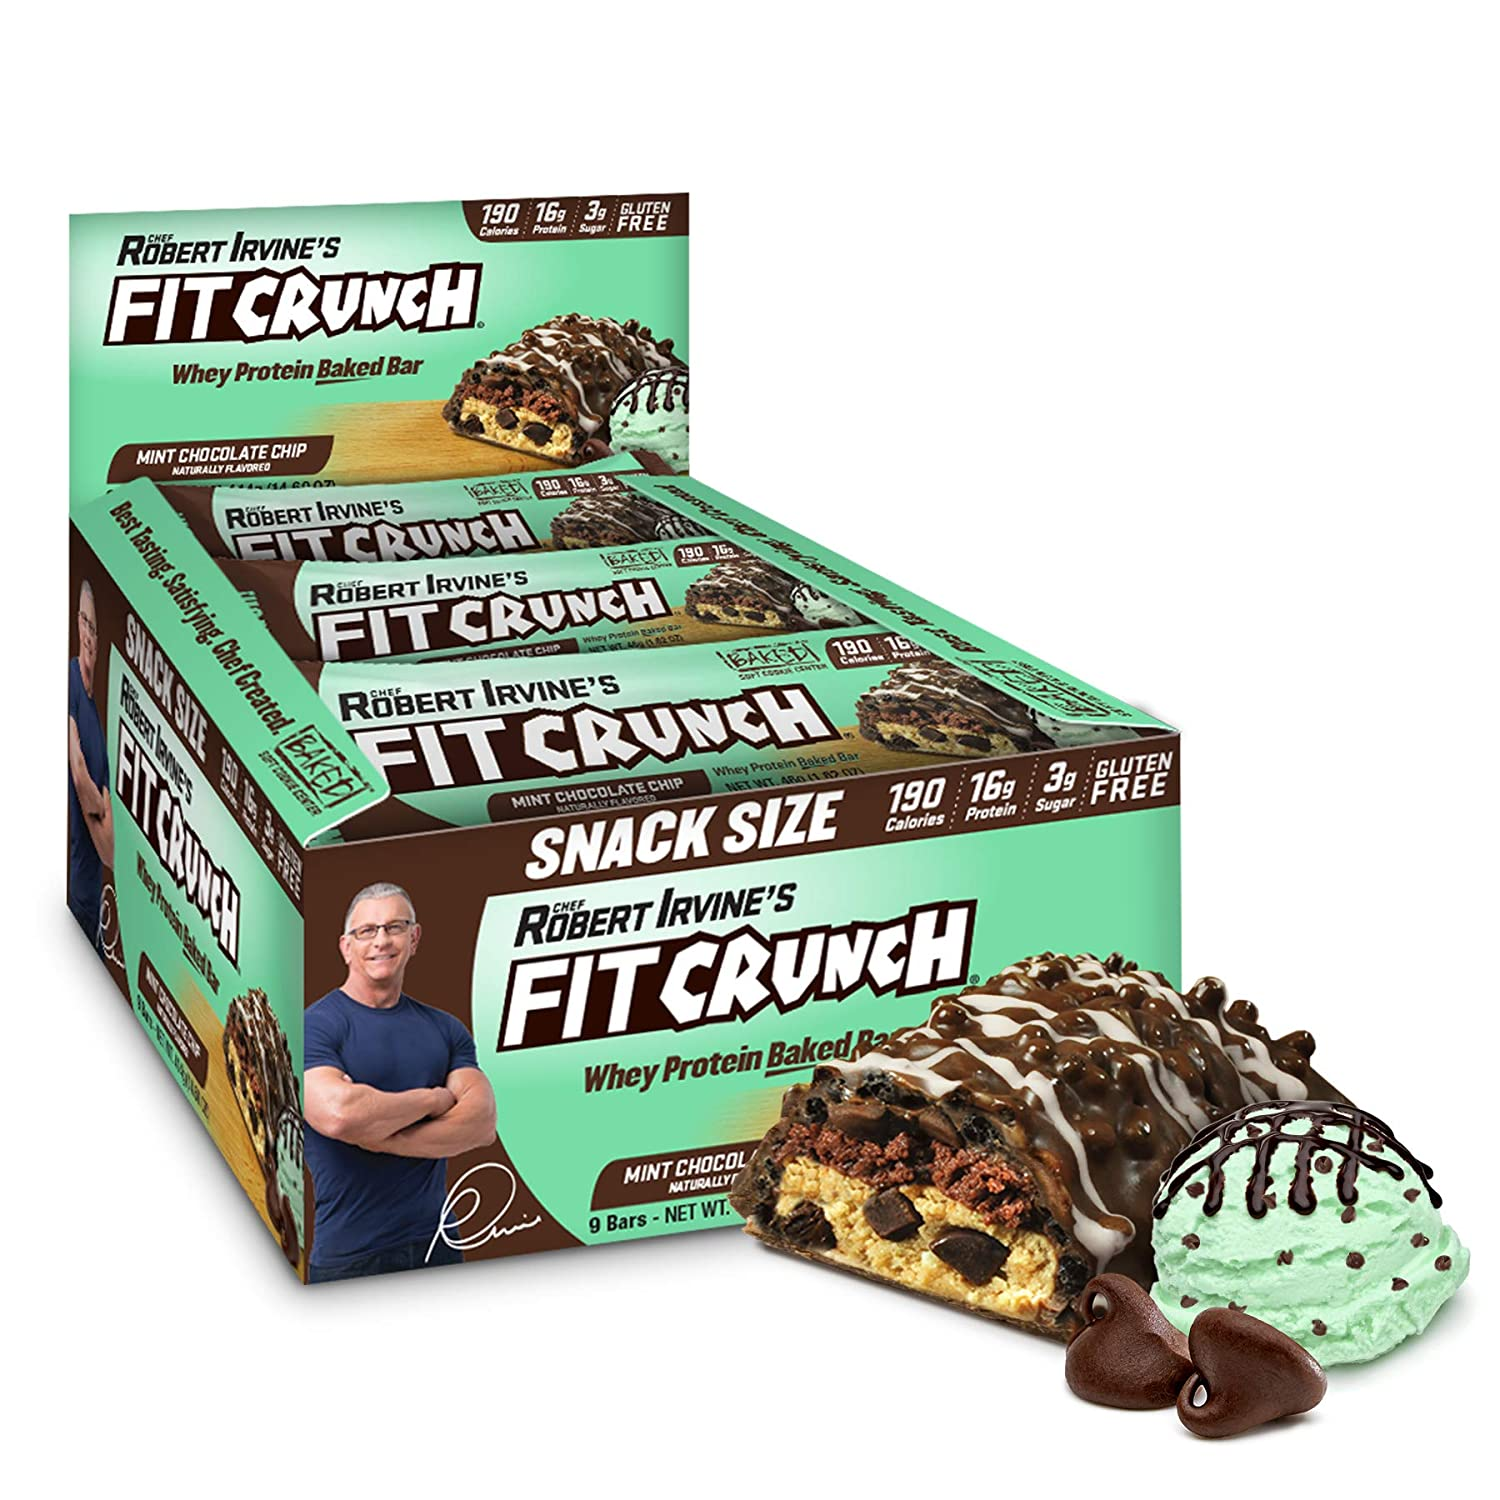 FITCRUNCH Snack Size Protein Bars, Designed by Robert Irvine, World's Only 6-Layer Baked Bar, Just 3g of Sugar & Soft Cake Core (9 Snack Size Bars, Mint Chocolate Chip)